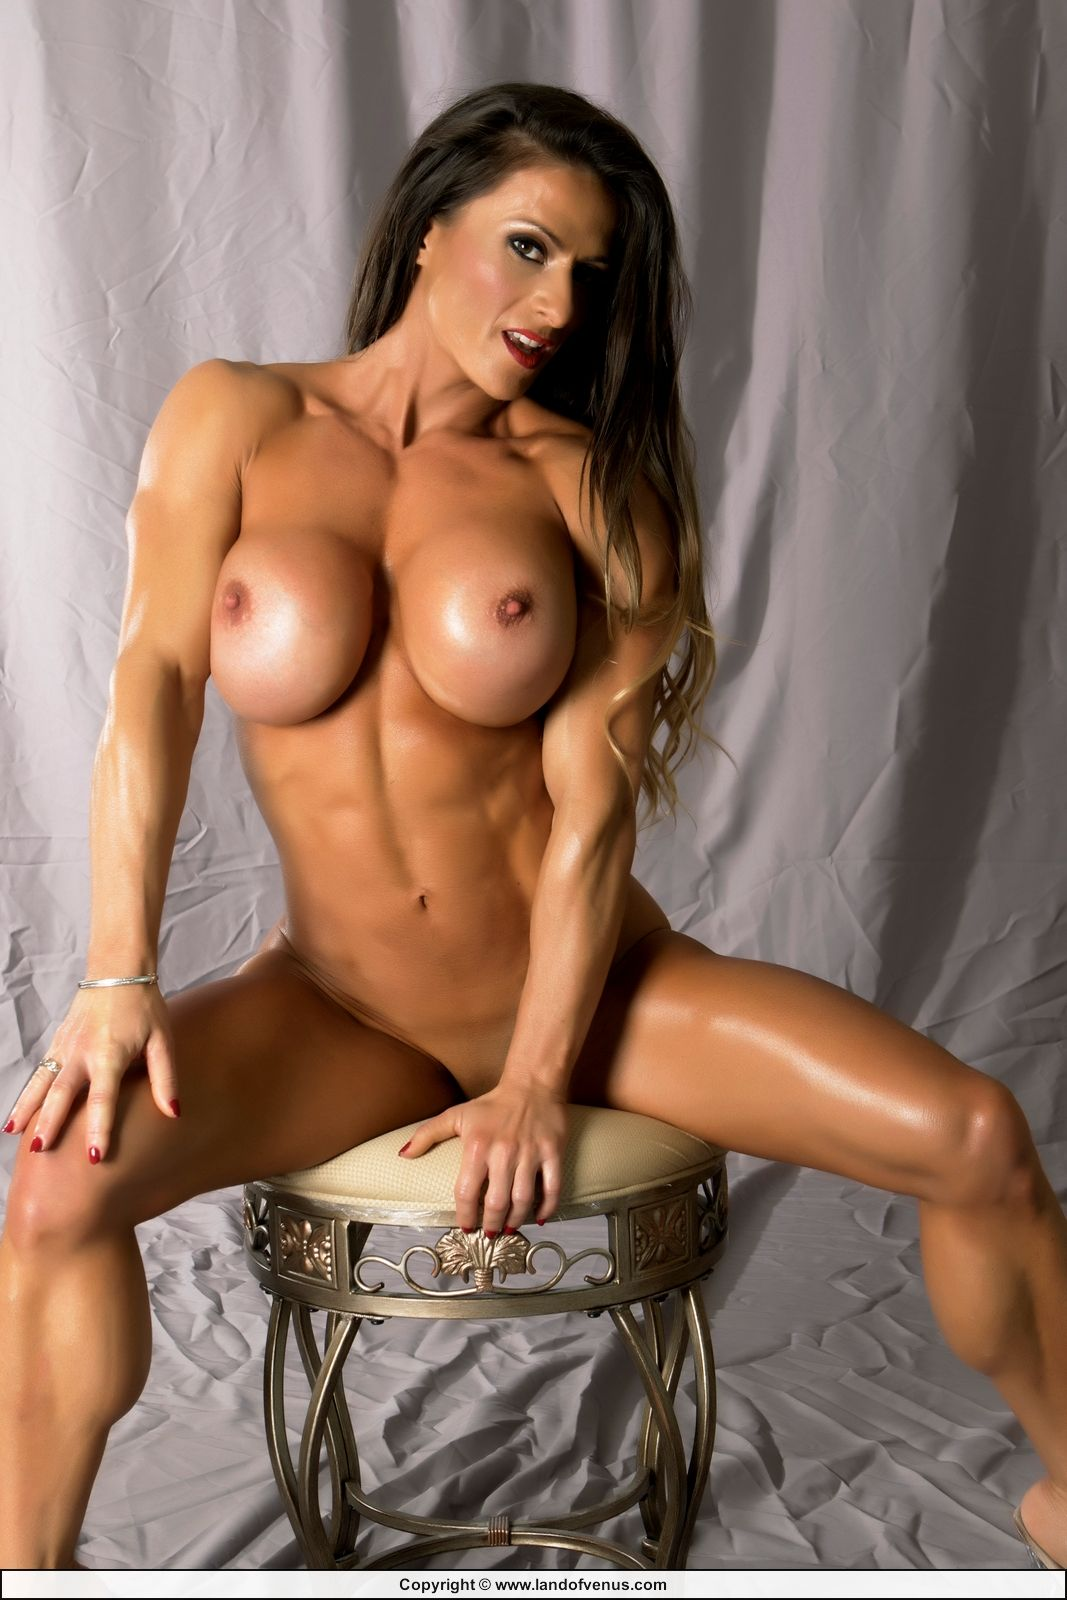 nude-fitness-babes: More new pics of IFBB Pro Figure ...